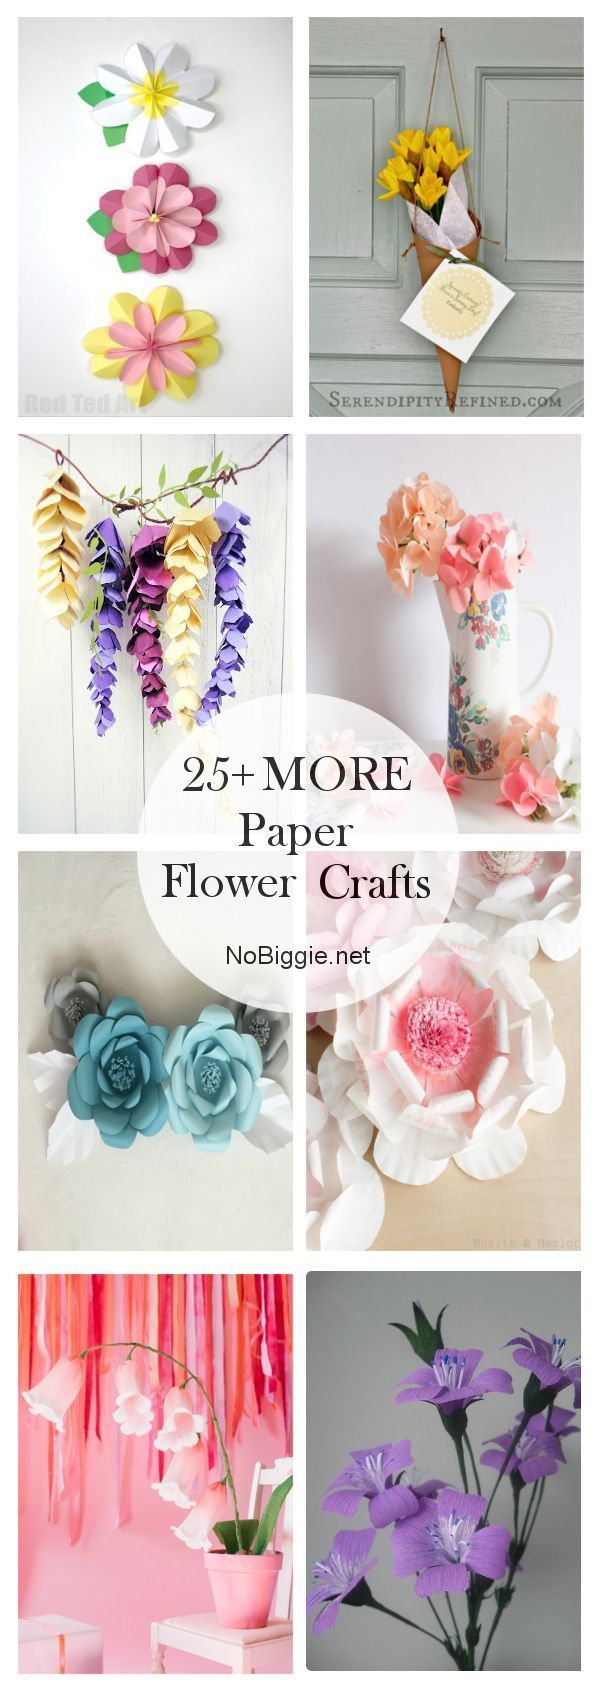 MORE Paper Flowers! We shared beautiful paper flowered and now we have even MORE Paper flowers for you this Spring!   #paperflowers #papercrafts #pape : MORE Paper Flowers! We shared beautiful paper flowered and now we have even MORE Paper flowers for you this Spring!   #paperflowers #papercrafts #paperflowercrafts #DIYflowers #springcrafts  via @nobiggie #MORE #Paper #Flowers! #constructionpaperflowers MORE Paper Flowers! We shared beautiful paper flowered and now we have even MORE Paper flower #constructionpaperflowers